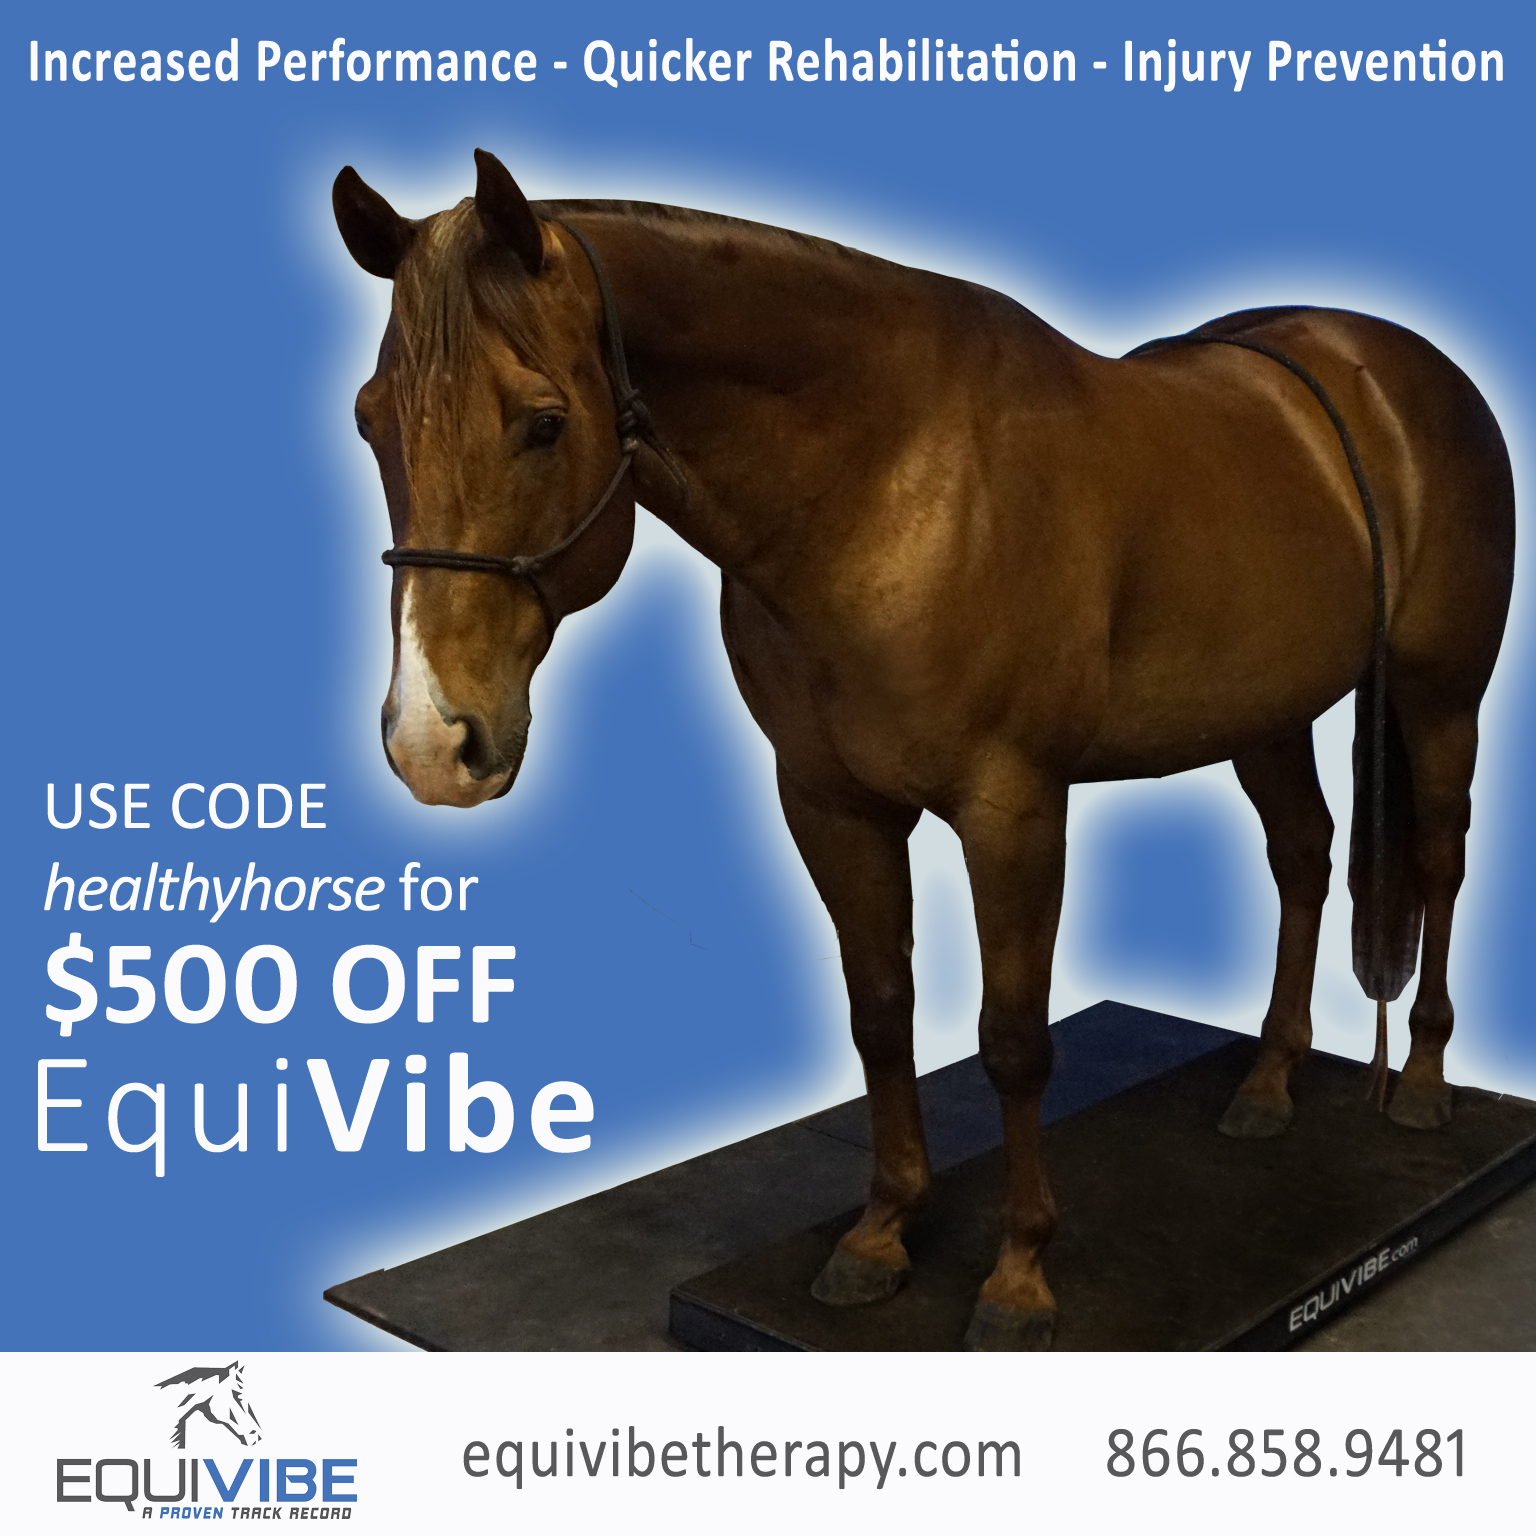 Get $500 Off EquiVibe